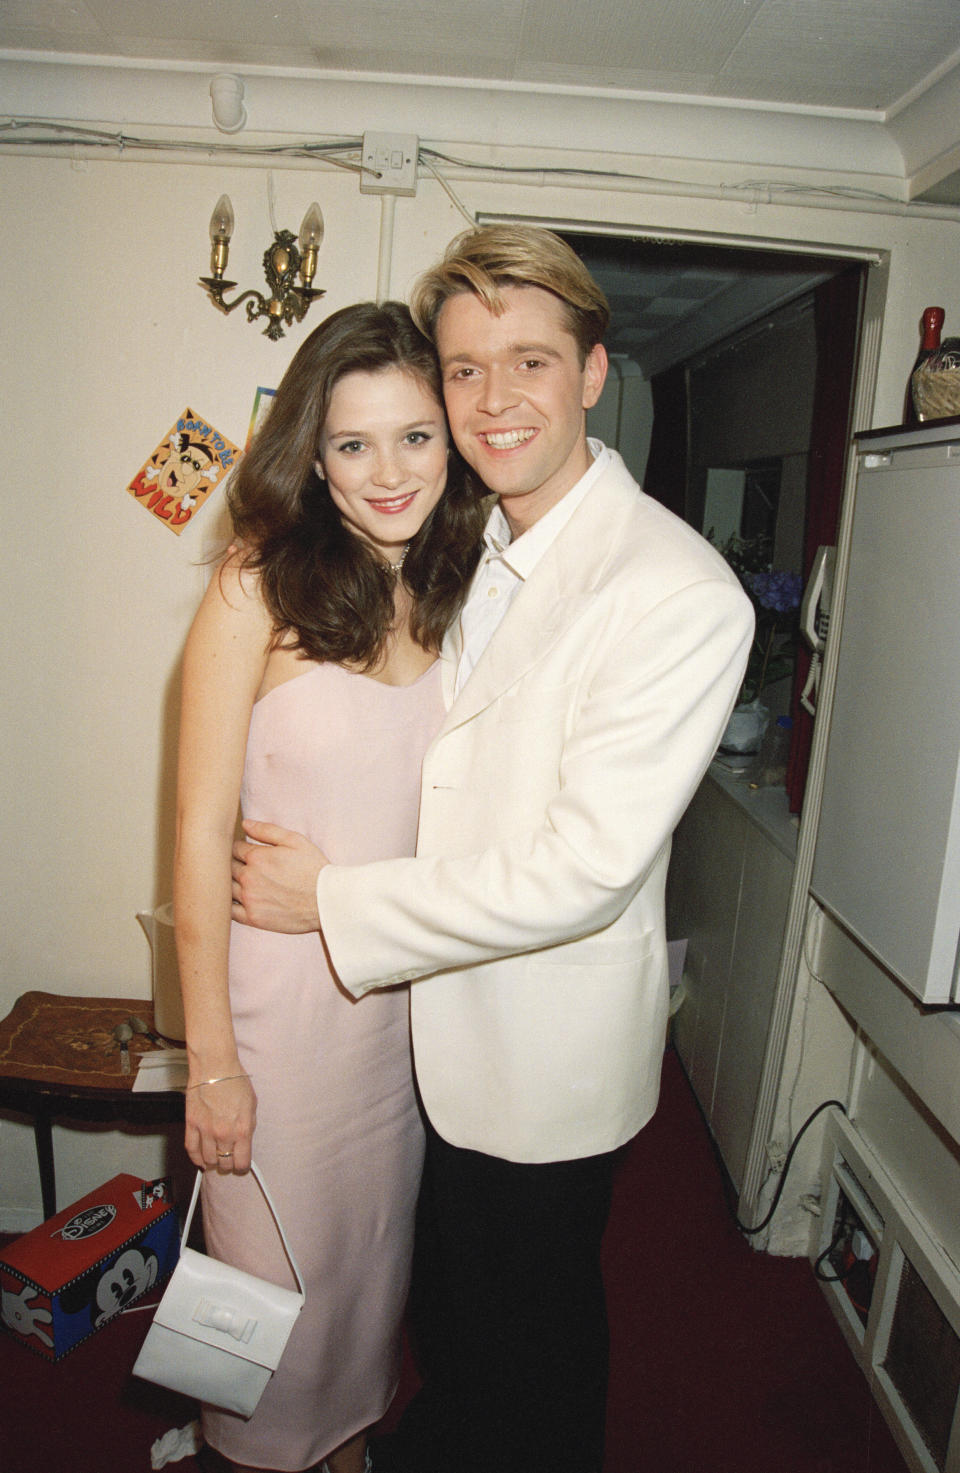 Actors Anna Friel and Darren Day at the opening performance of the musical 'Copacabana', 12th April 1995. (Photo by Dave Benett/Getty Images)